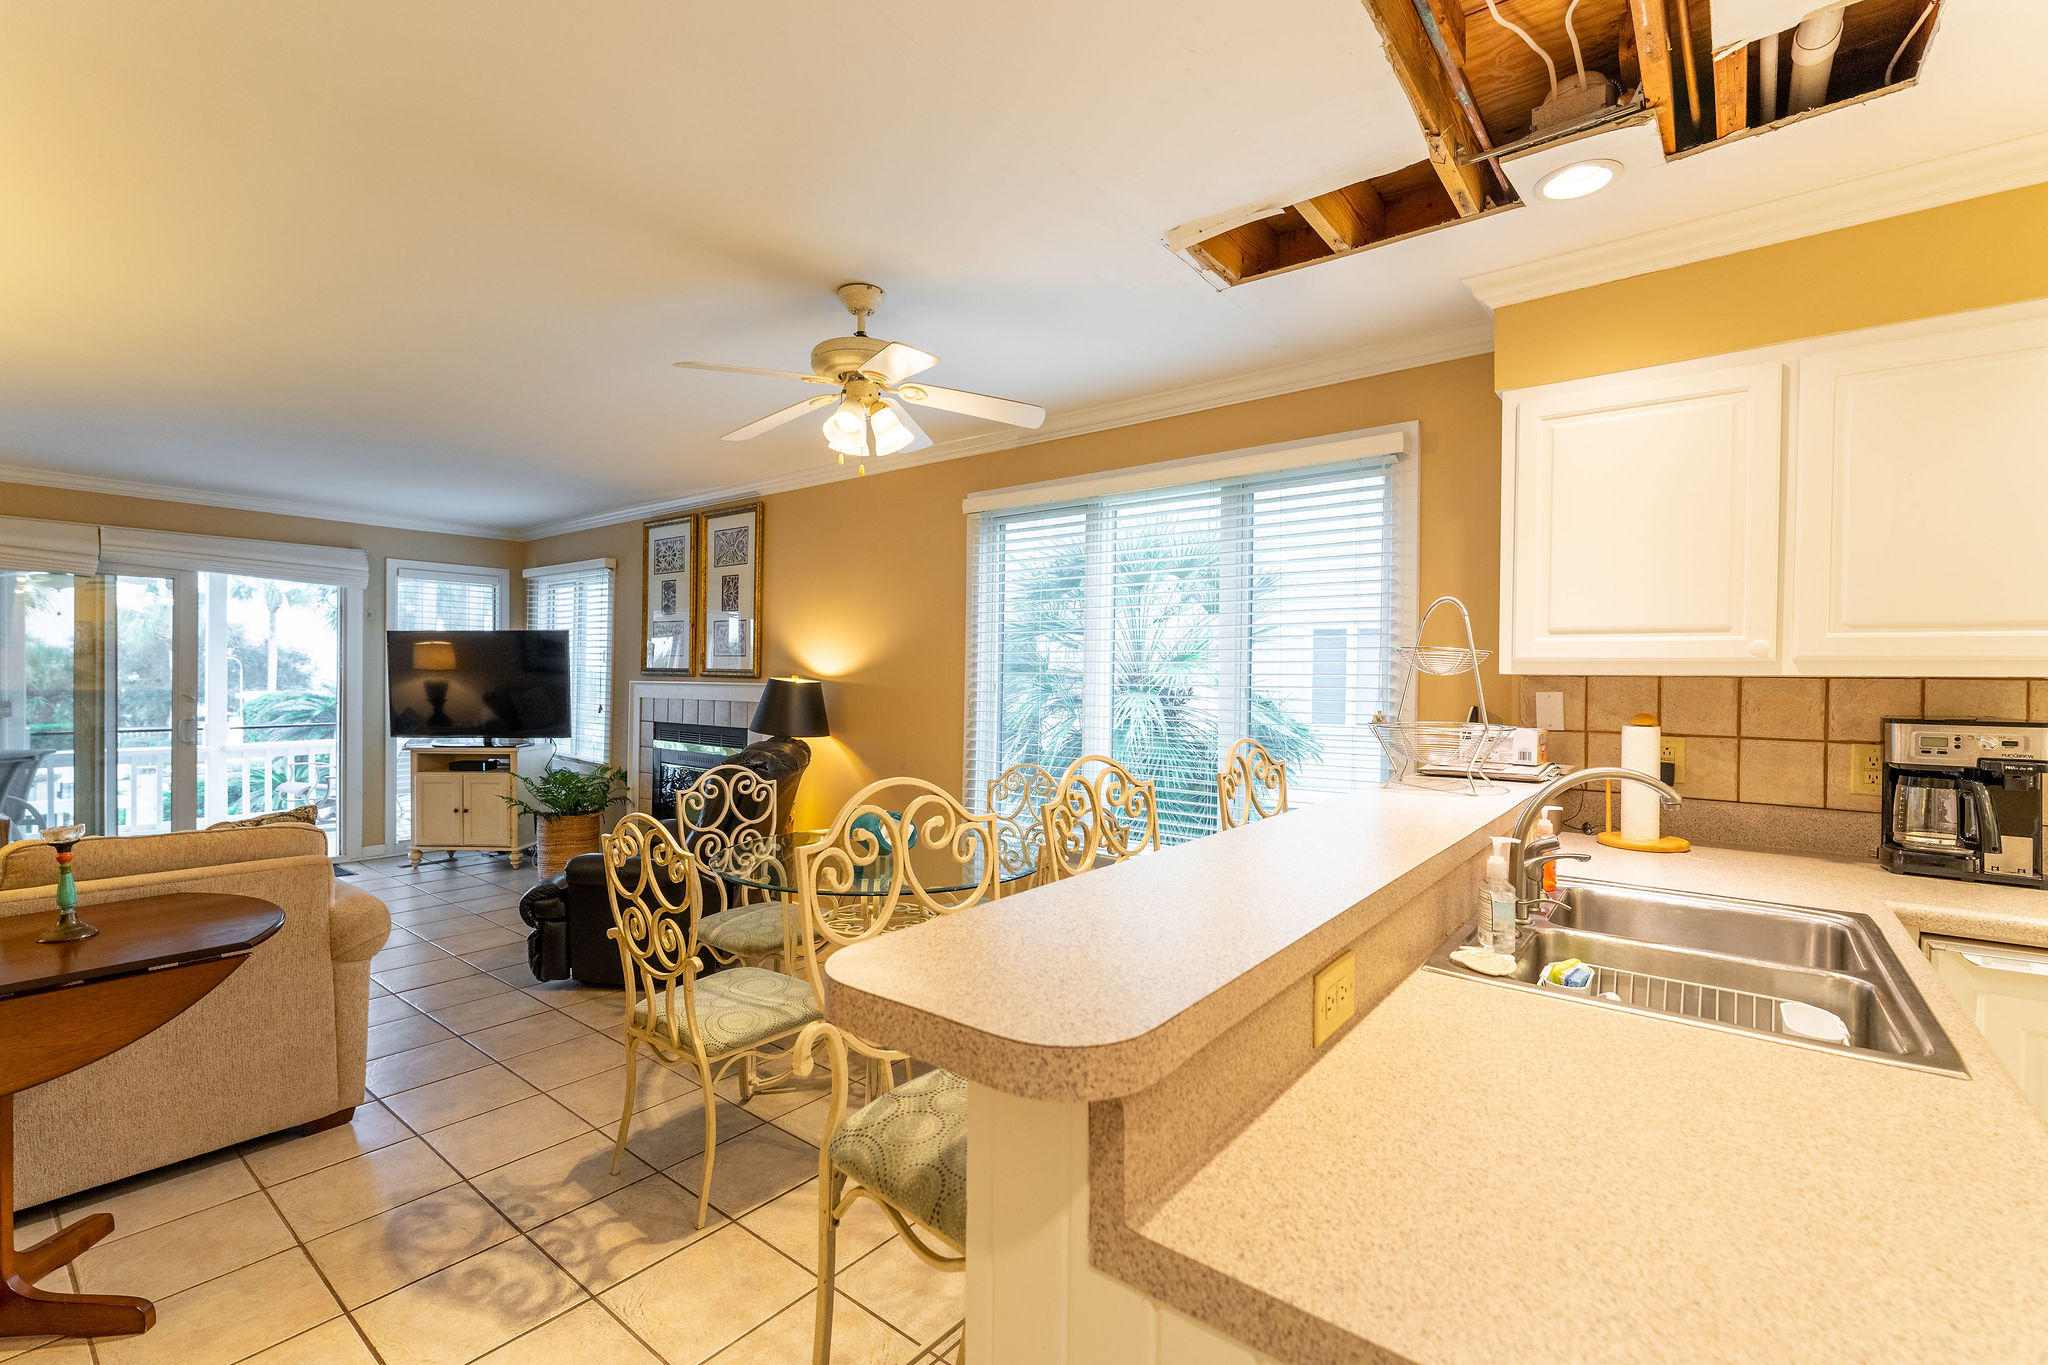 54 Beach Club Villa 1/6th Isle Of Palms, SC 29451